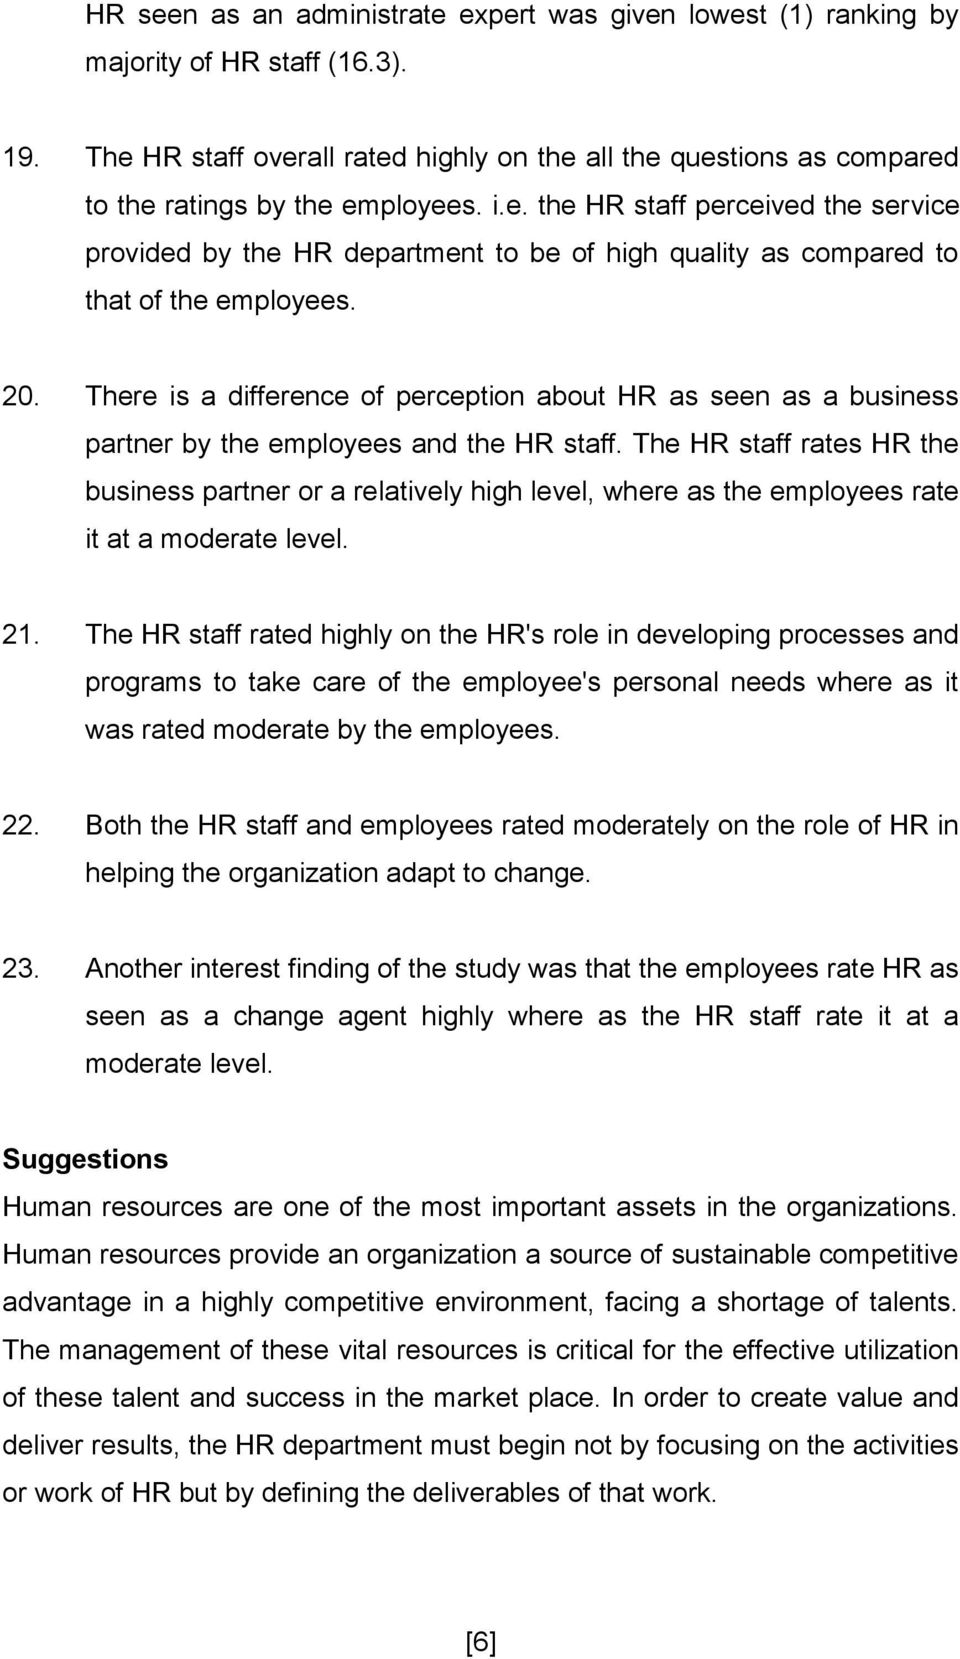 20. There is a difference of perception about HR as seen as a business partner by the employees and the HR staff.